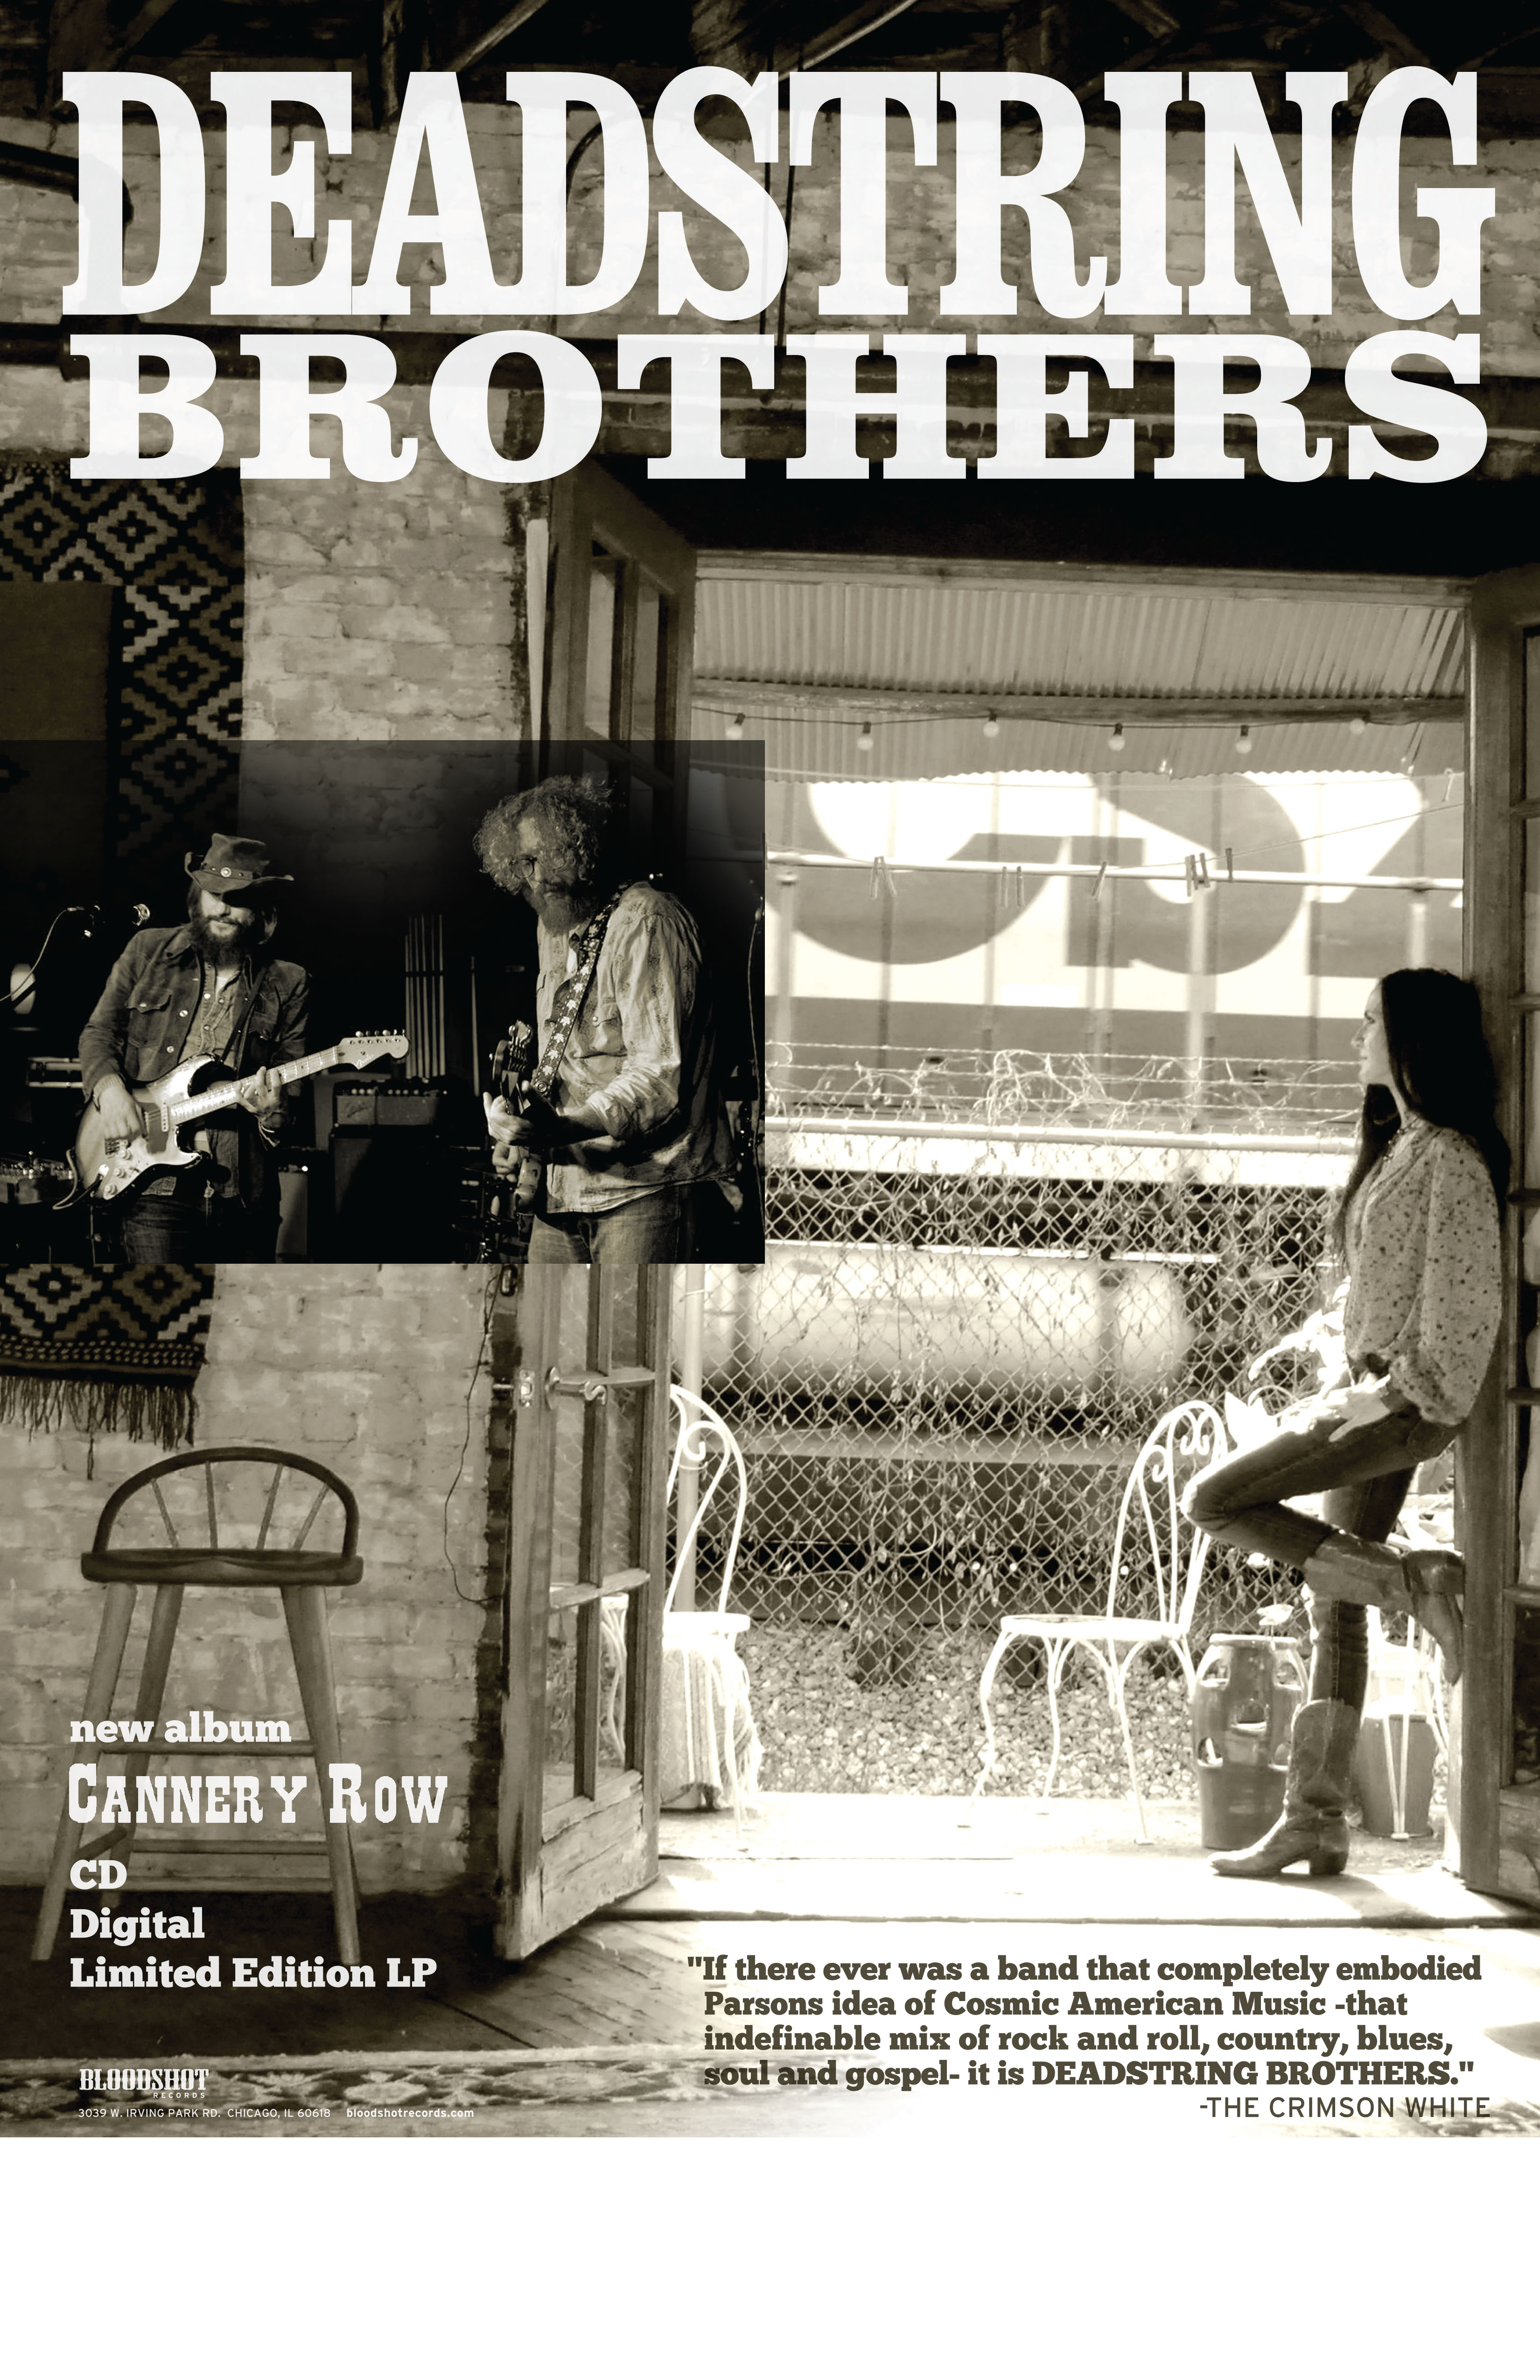 Deadstring Brothers Cannery Row Poster